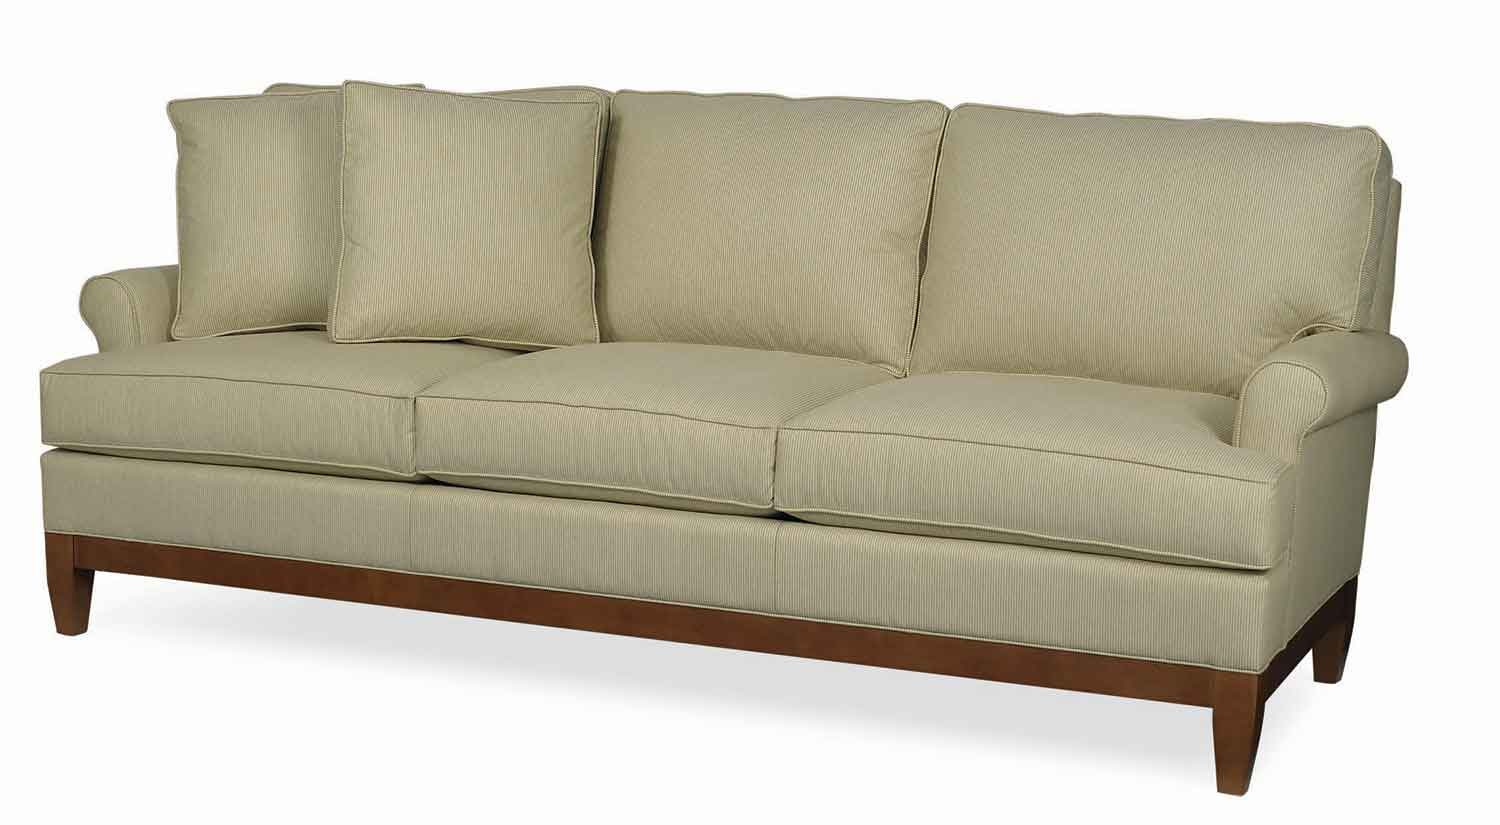 bluebell sofa gumtree sectional leather camden bed review home co